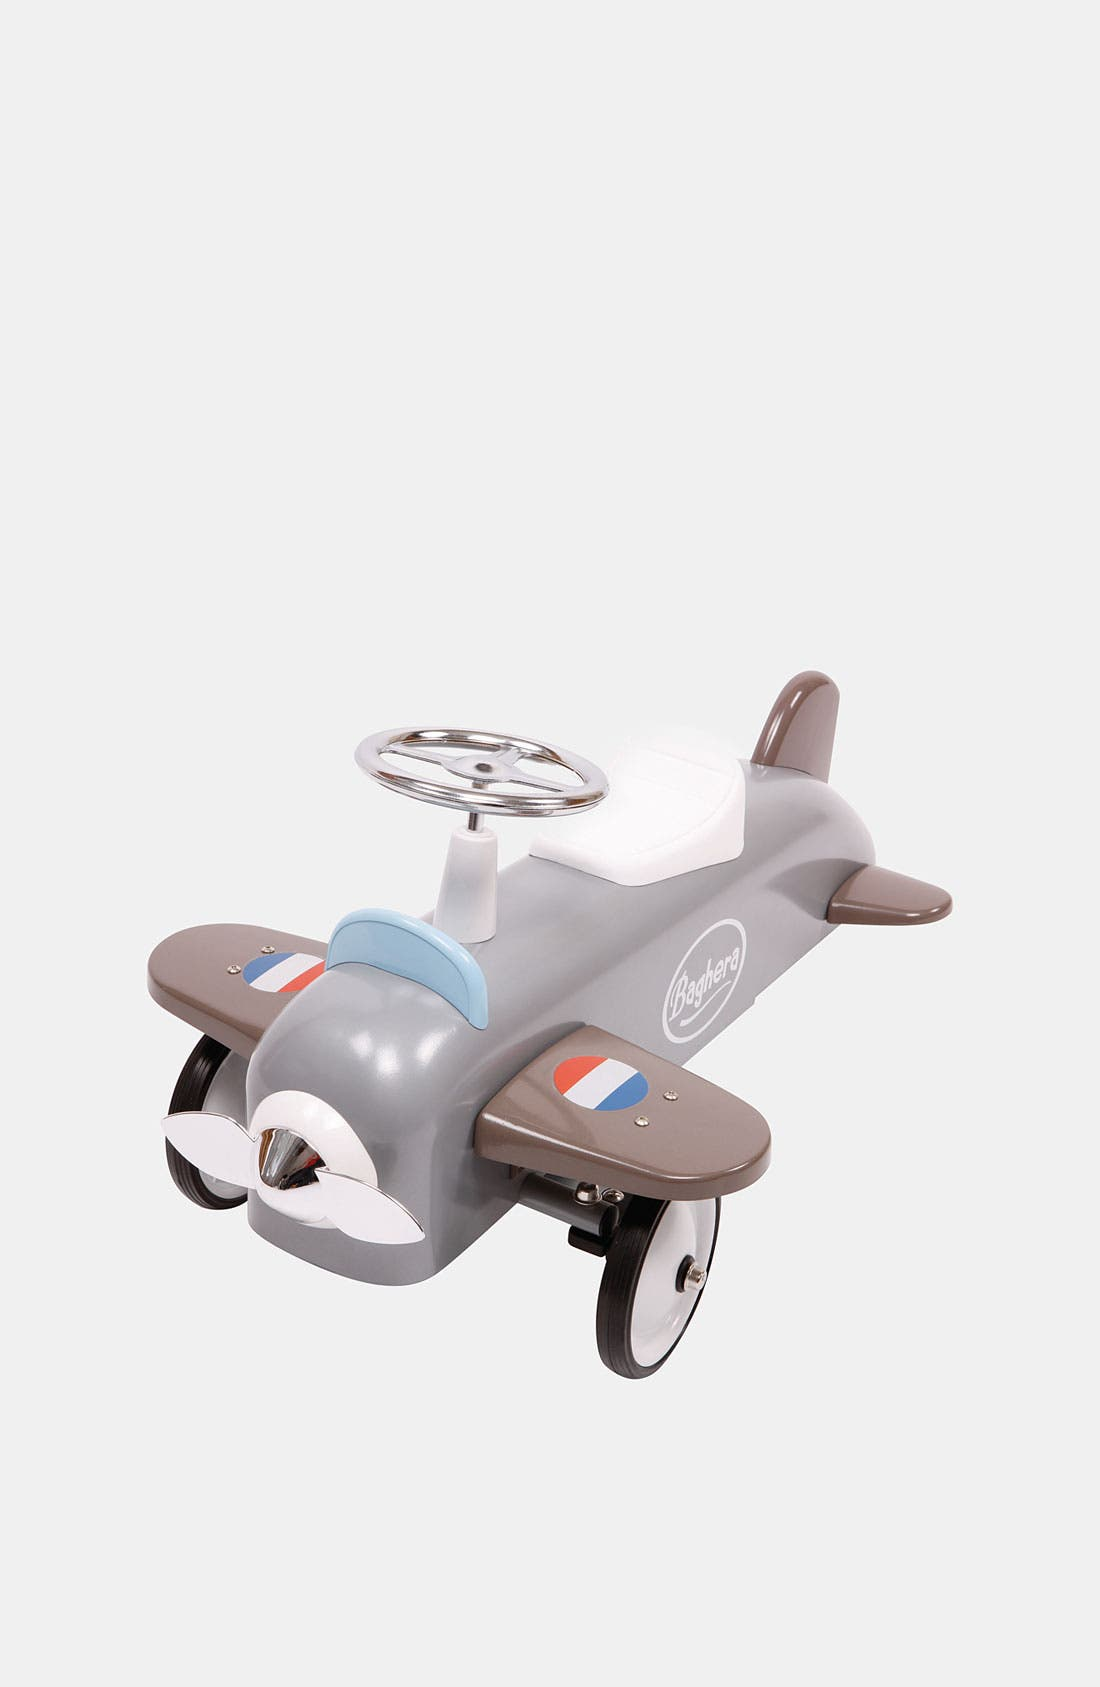 Main Image - Baghera 'Speedster' Ride-On Plane (Toddler)